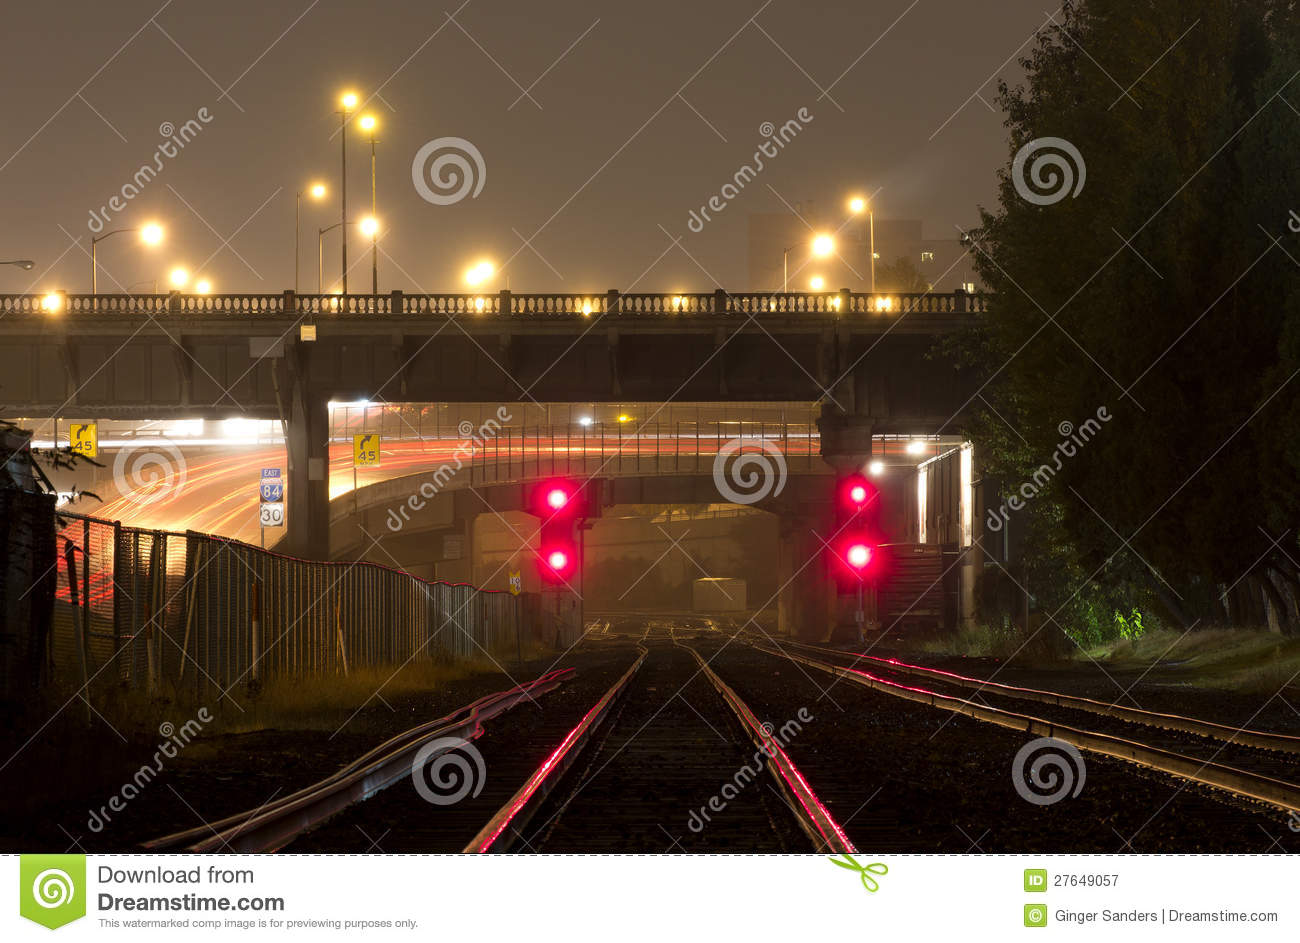 Red Light Train Tracks & Red Light Train Tracks stock image. Image of highway - 27649057 azcodes.com